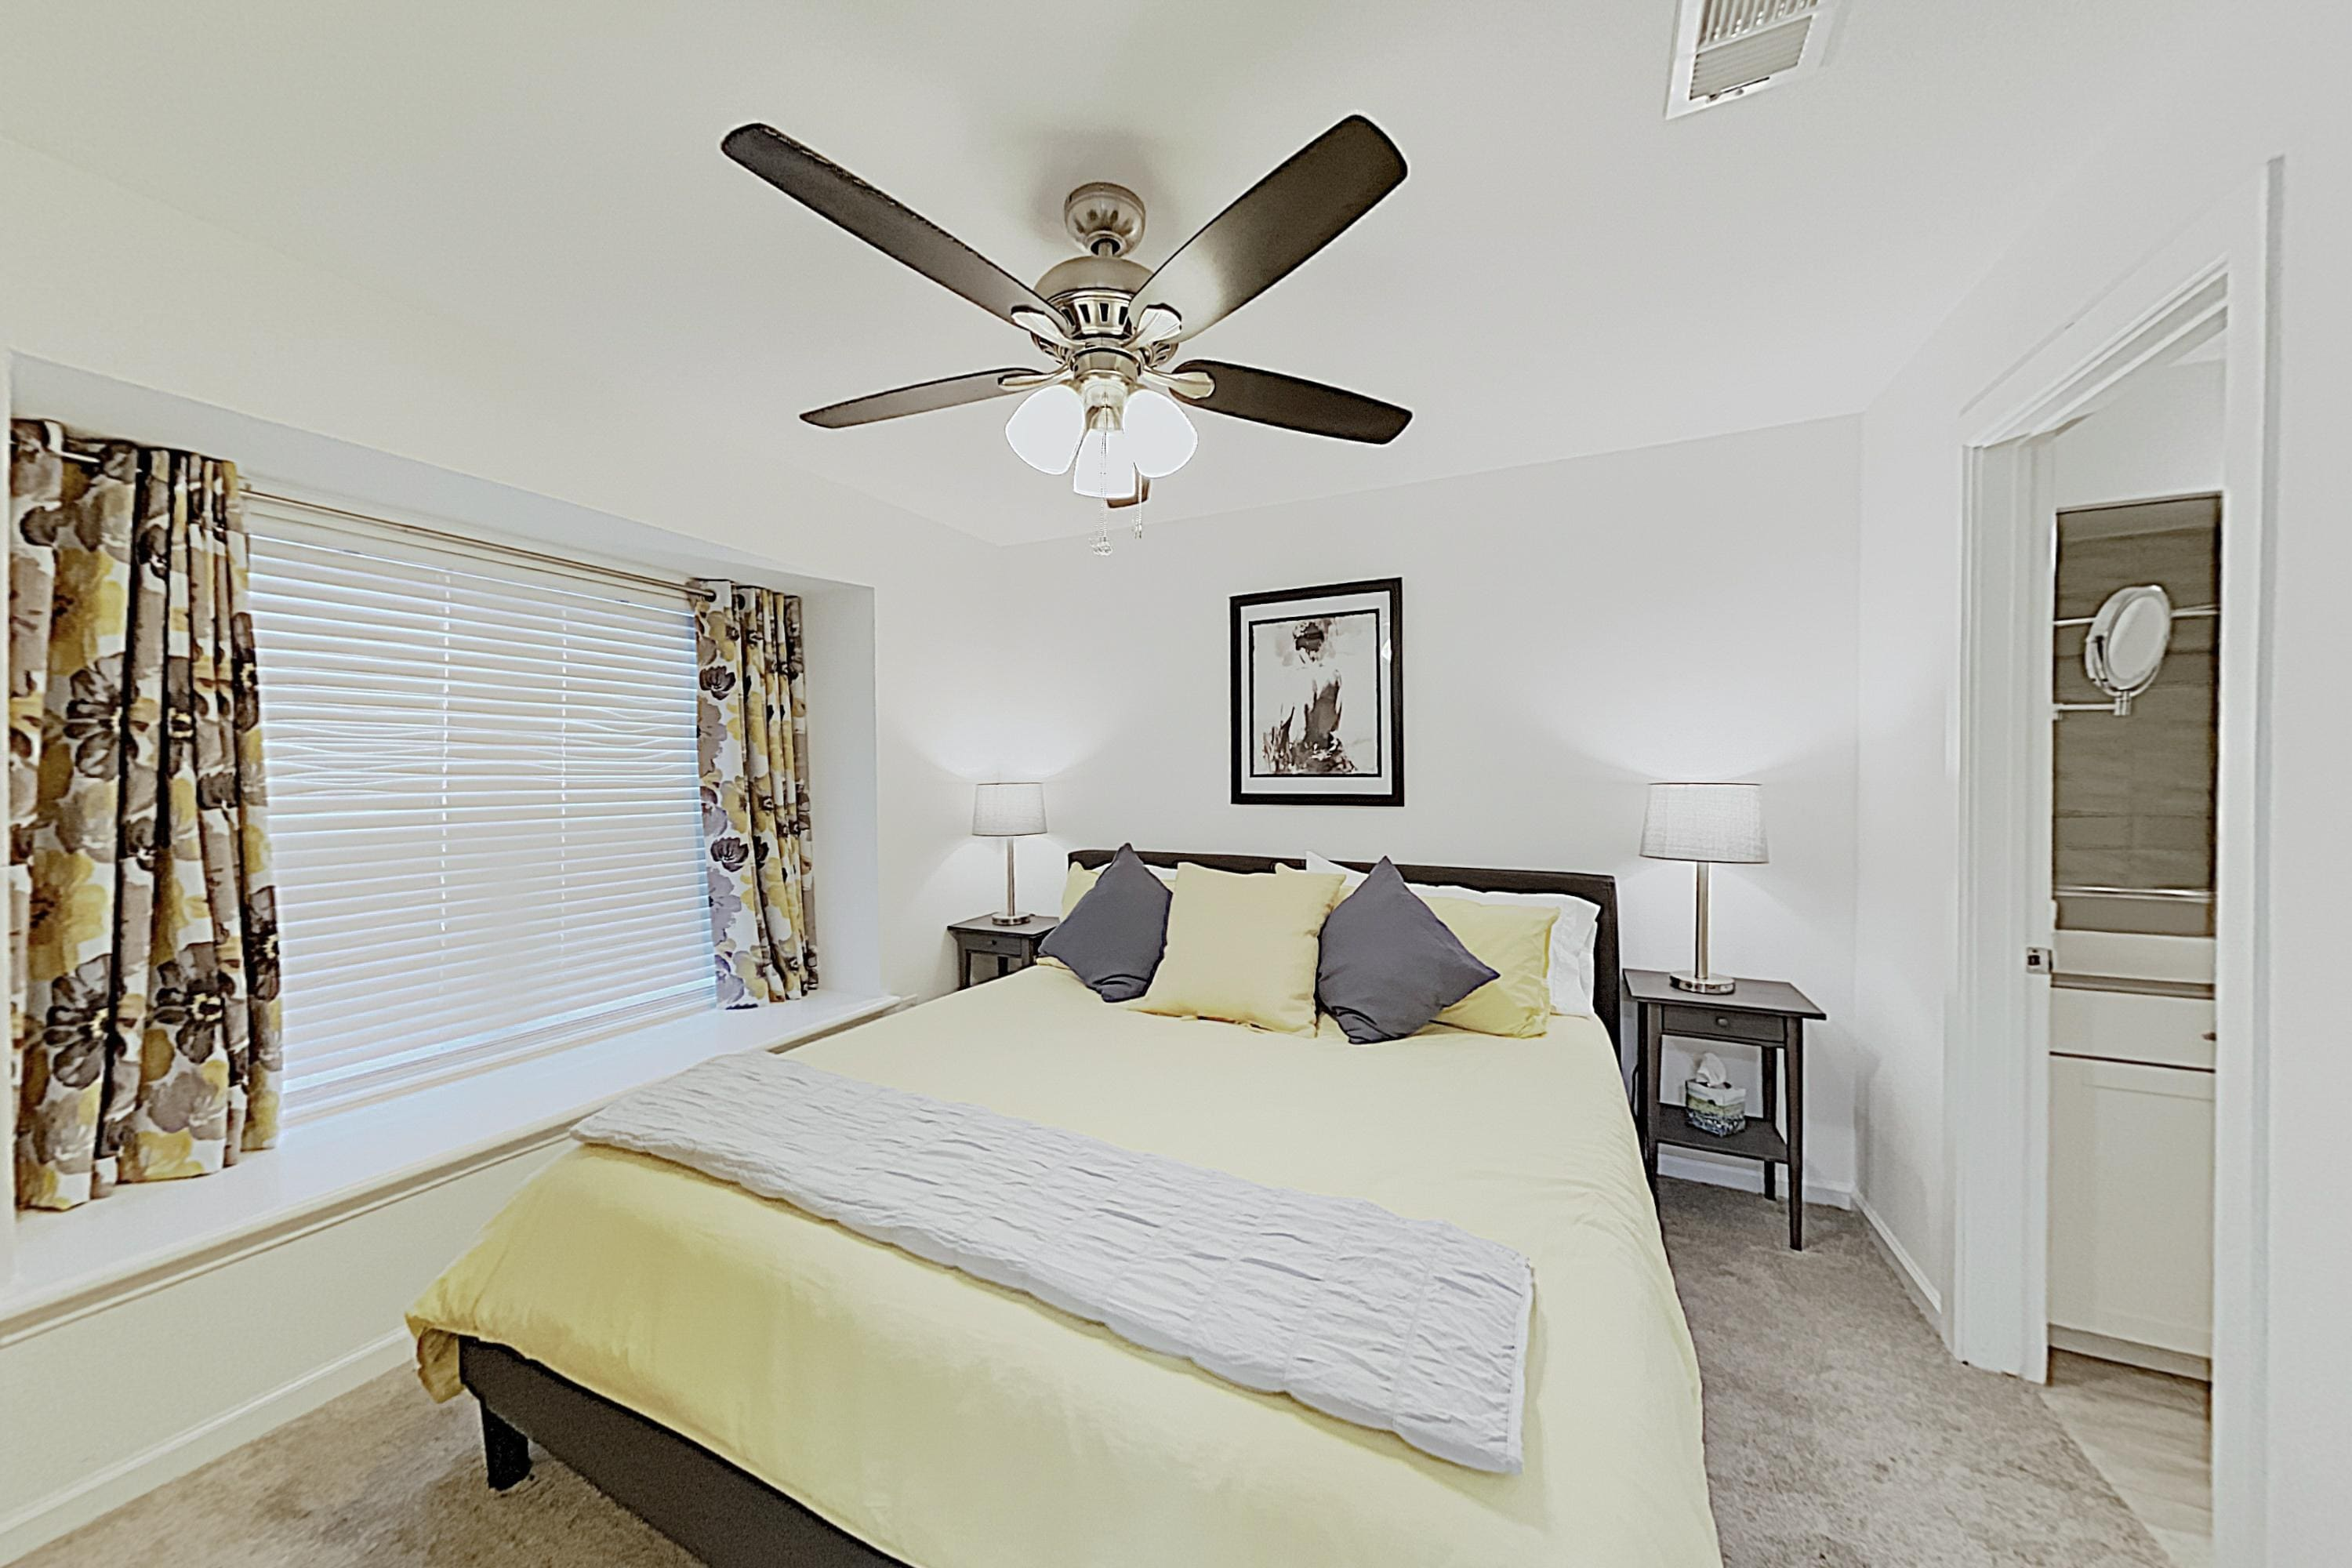 Sleep soundly in the master bedroom on a king bed.